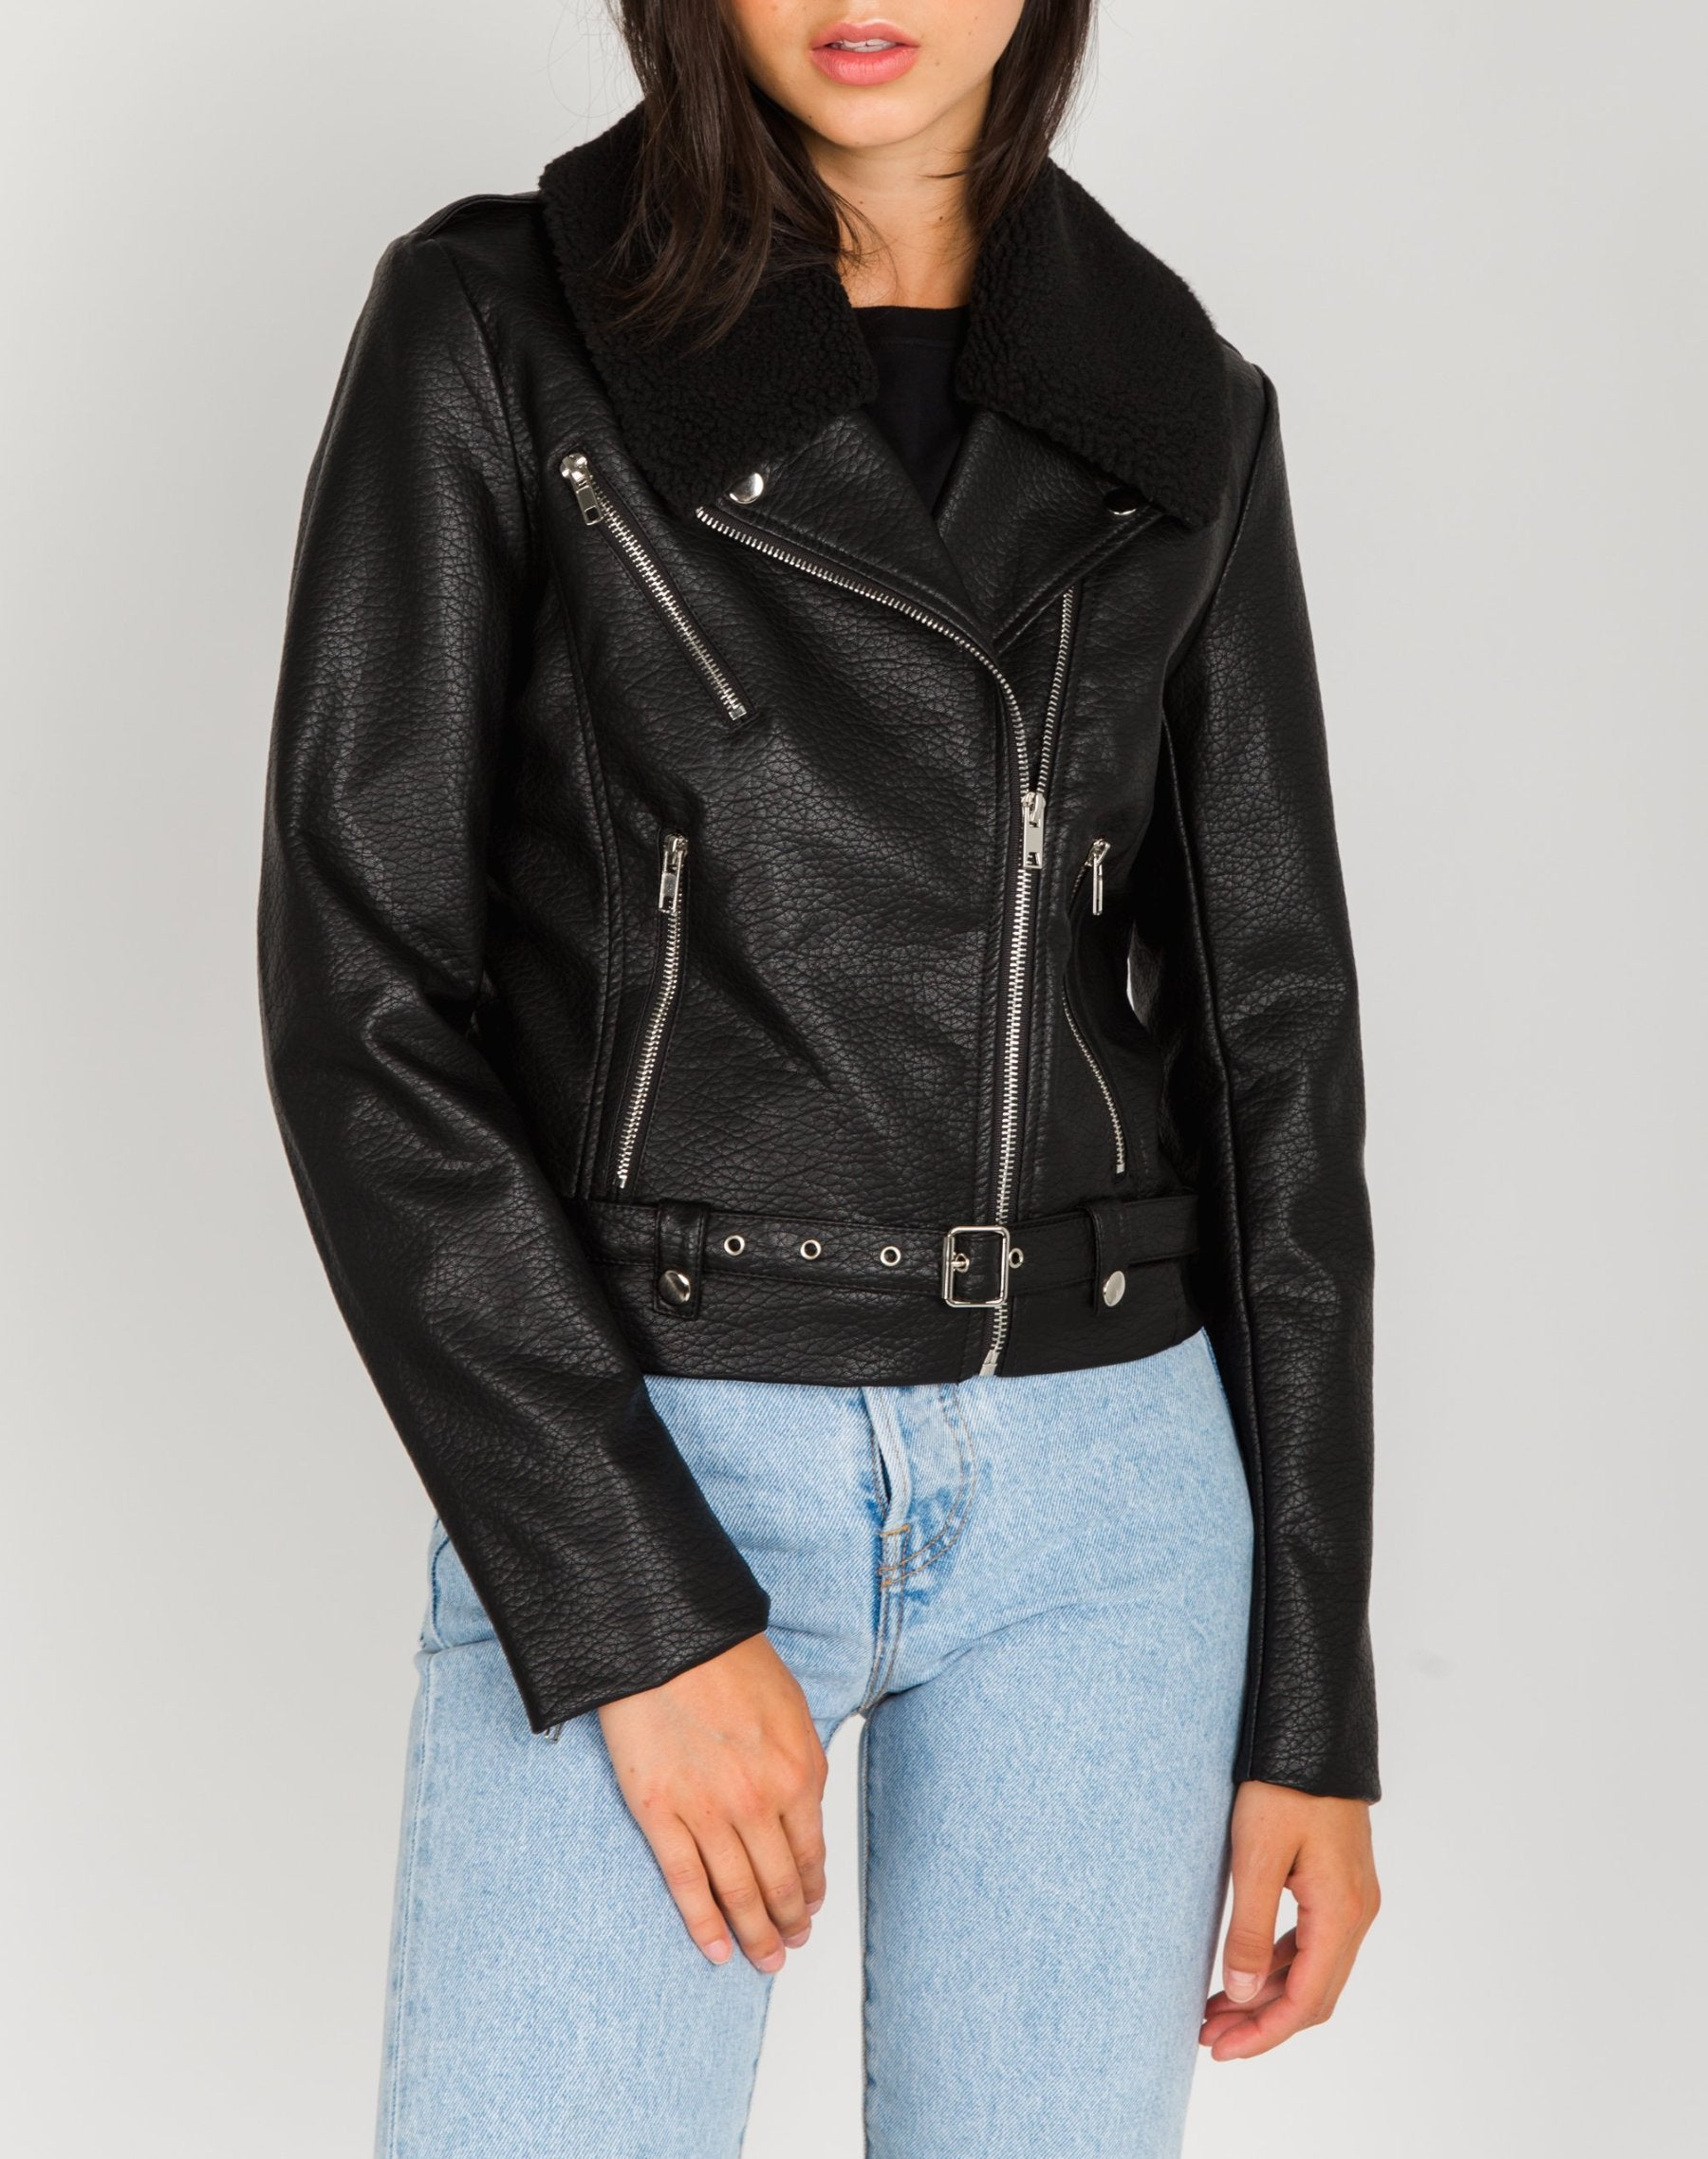 Photo 3 of the Florence vegan leather moto jacket in black with shearling by Brunette the Label.